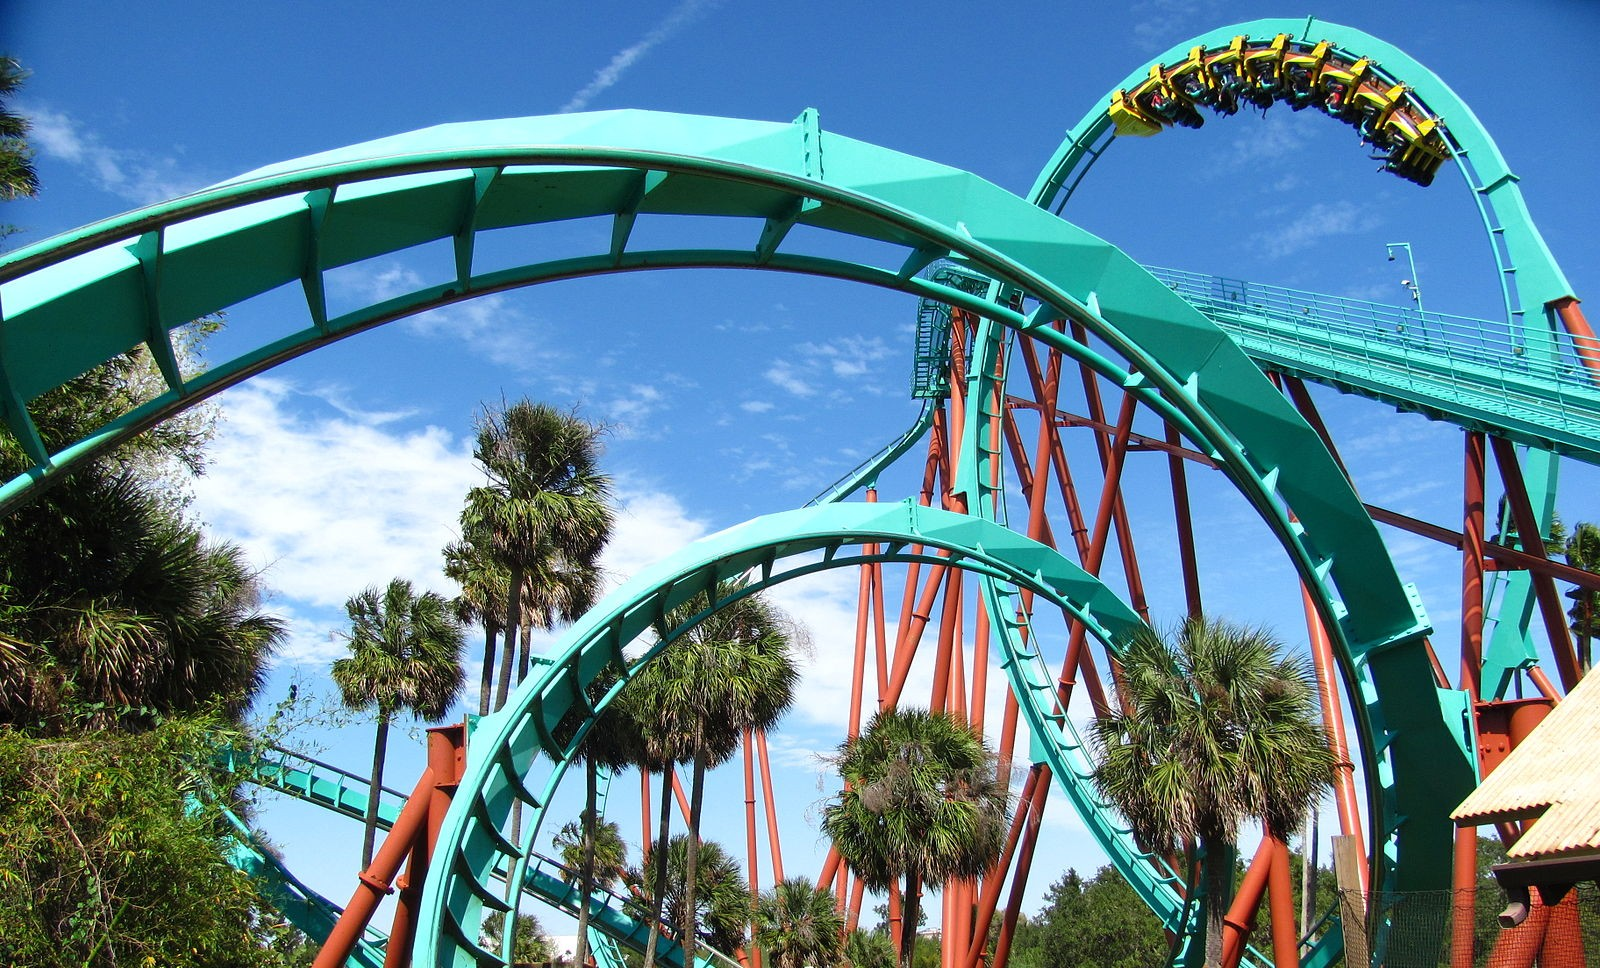 Life rebooted busch gardens tampa for Best day go busch gardens tampa